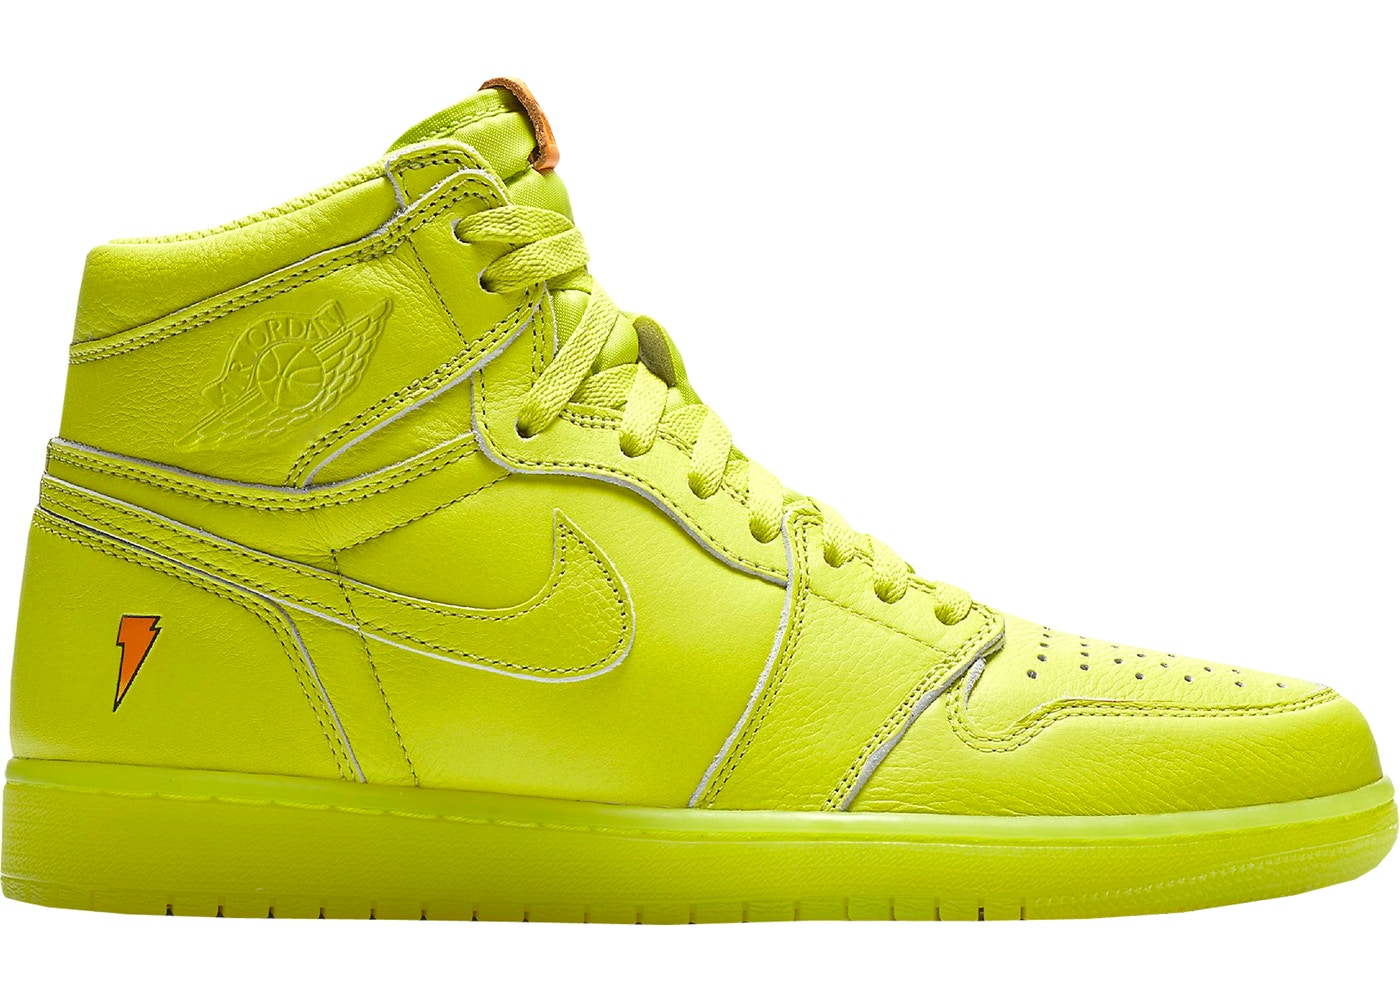 fb76d73eff6 Jordan 1 Retro High Gatorade Cyber - AJ5997-345